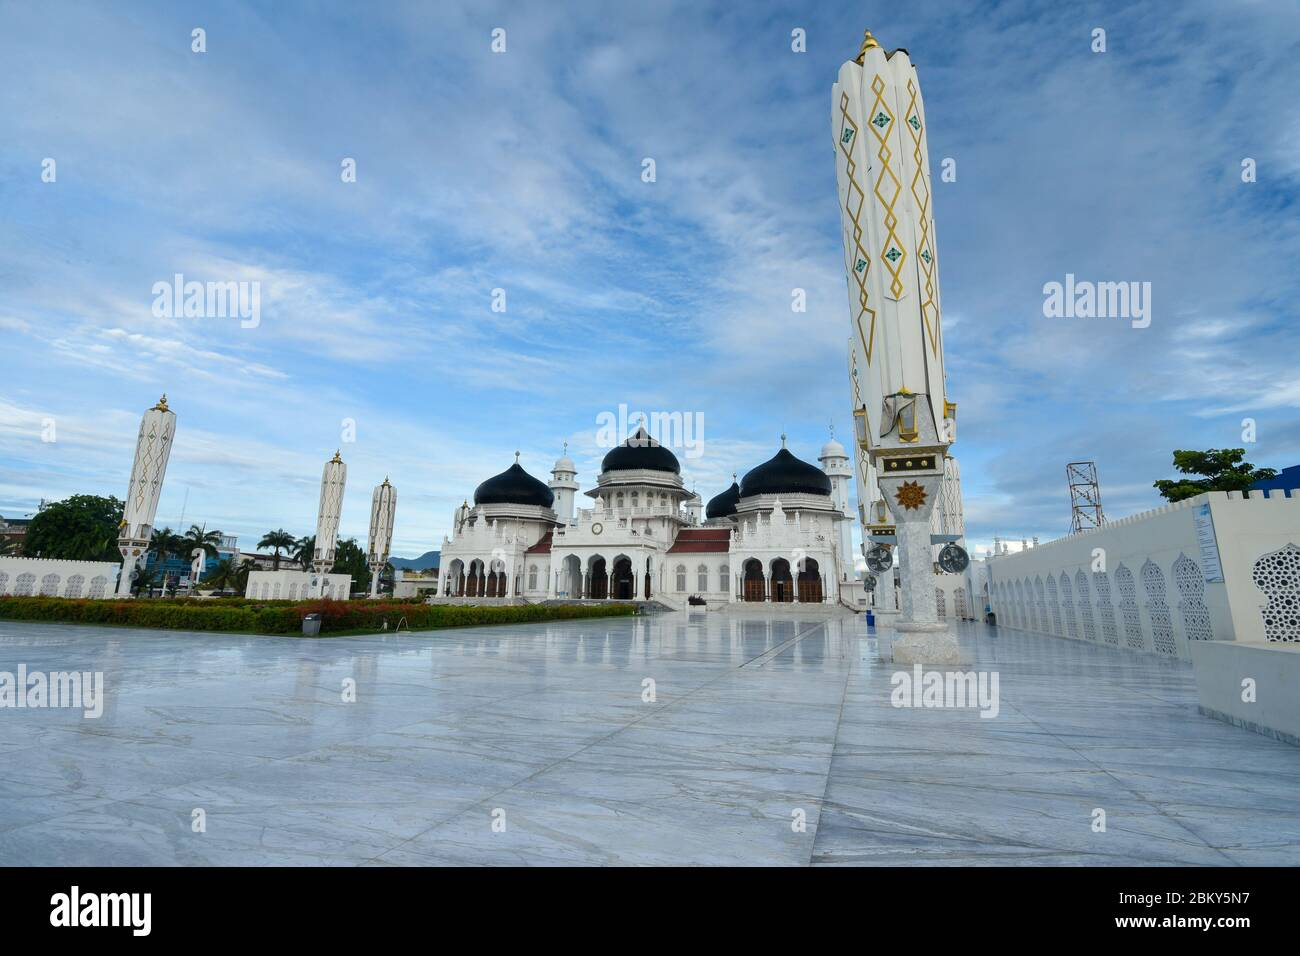 The grandeur of the Baiturrahman Great Mosque in the morning in Banda Aceh, Aceh province, Indonesia. Wednesday 6 May, 2020. Stock Photo